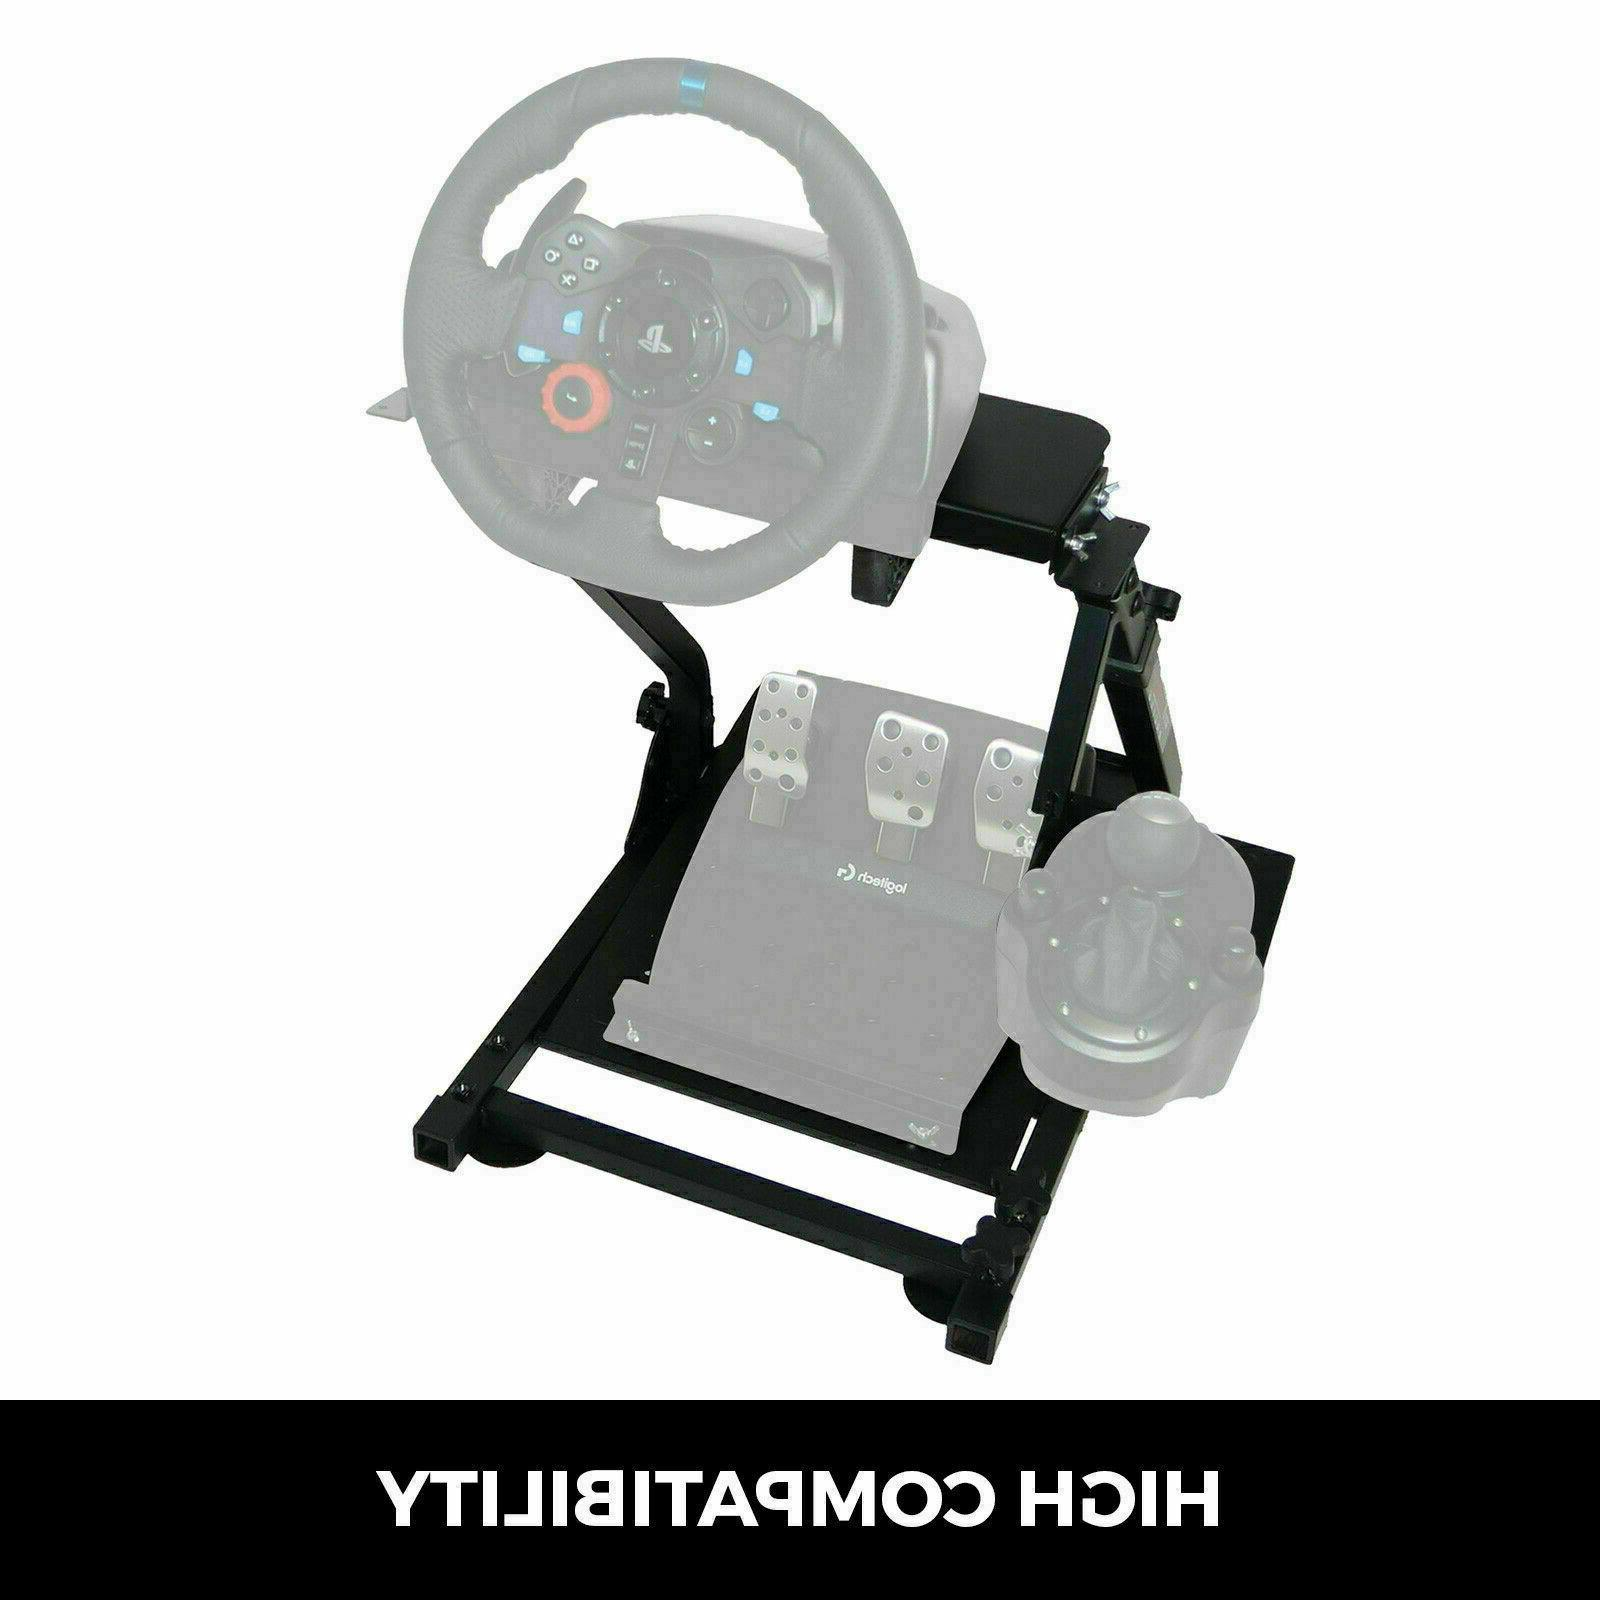 Steering Stand for GT Omega T300RS driving PS4